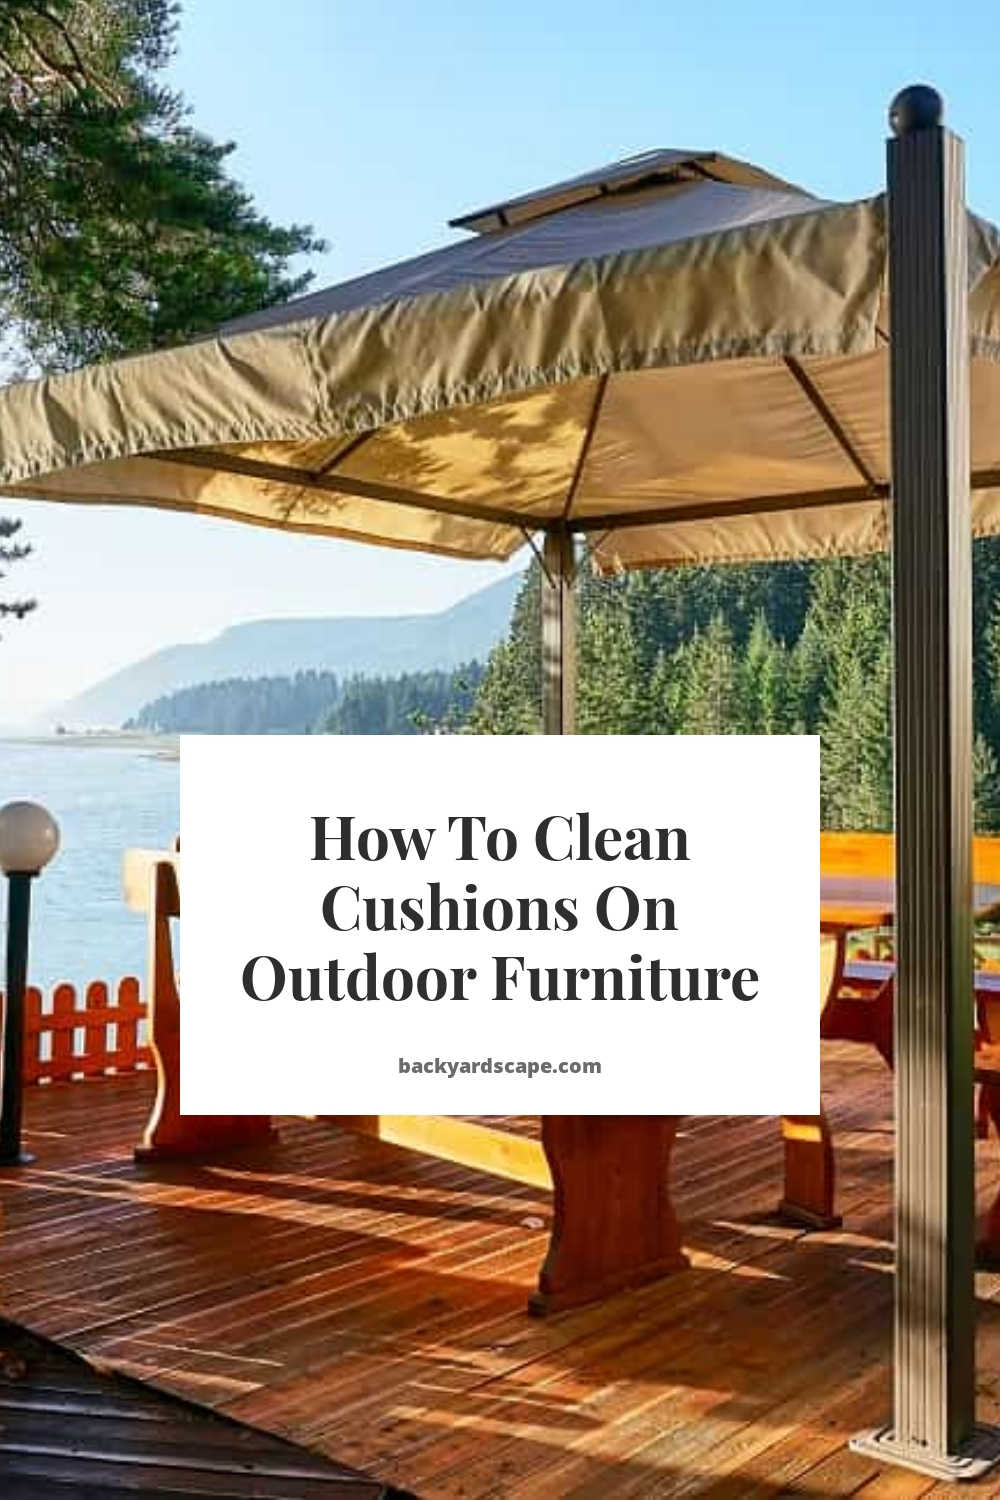 How To Clean Cushions On Outdoor Furniture